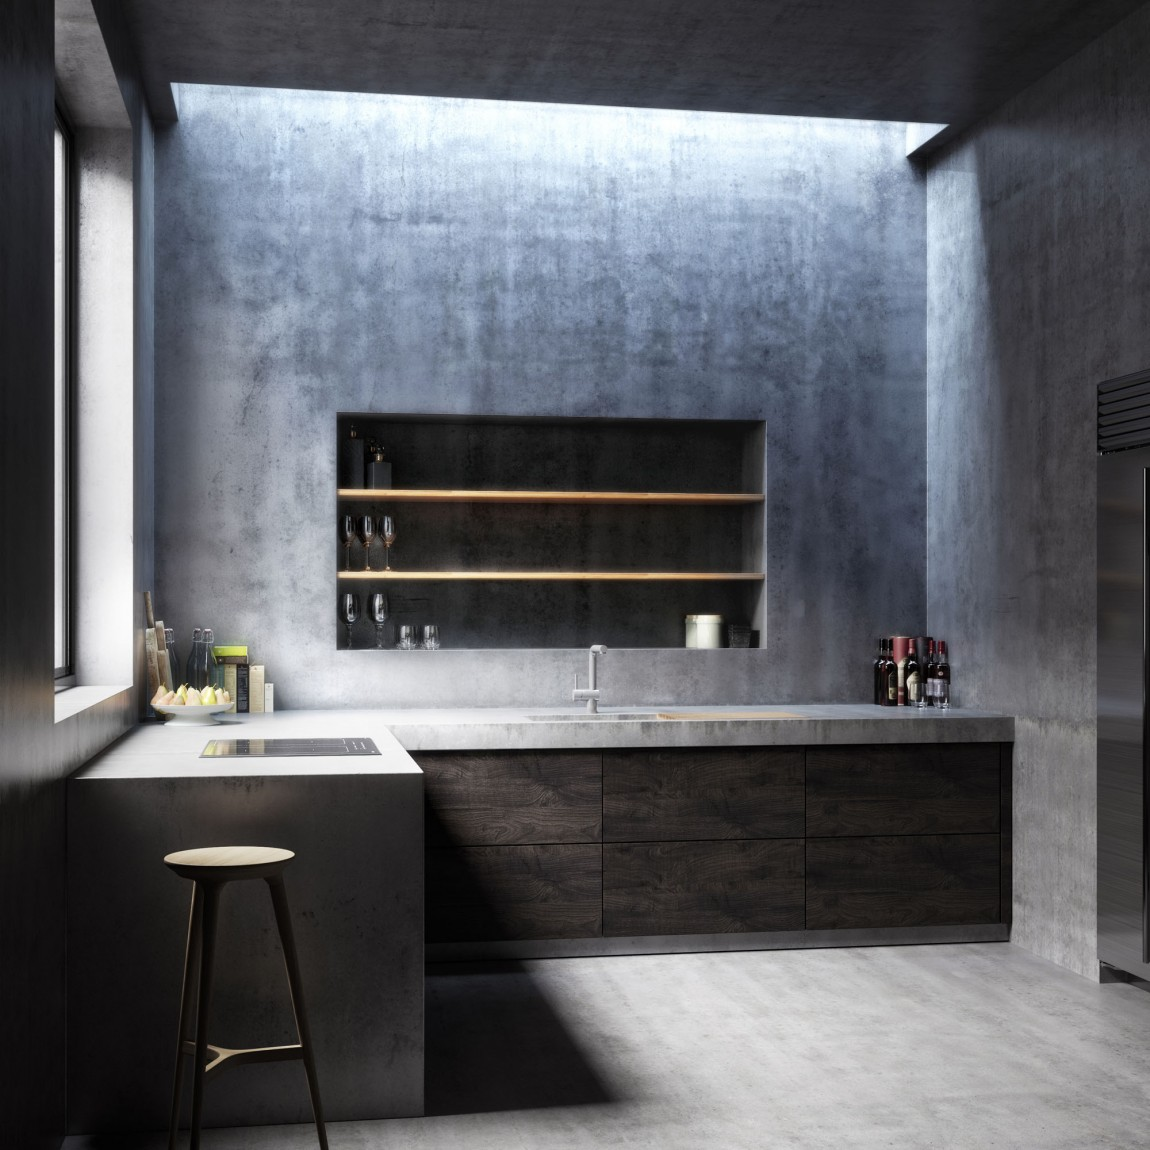 Modern kitchen design from Concrete